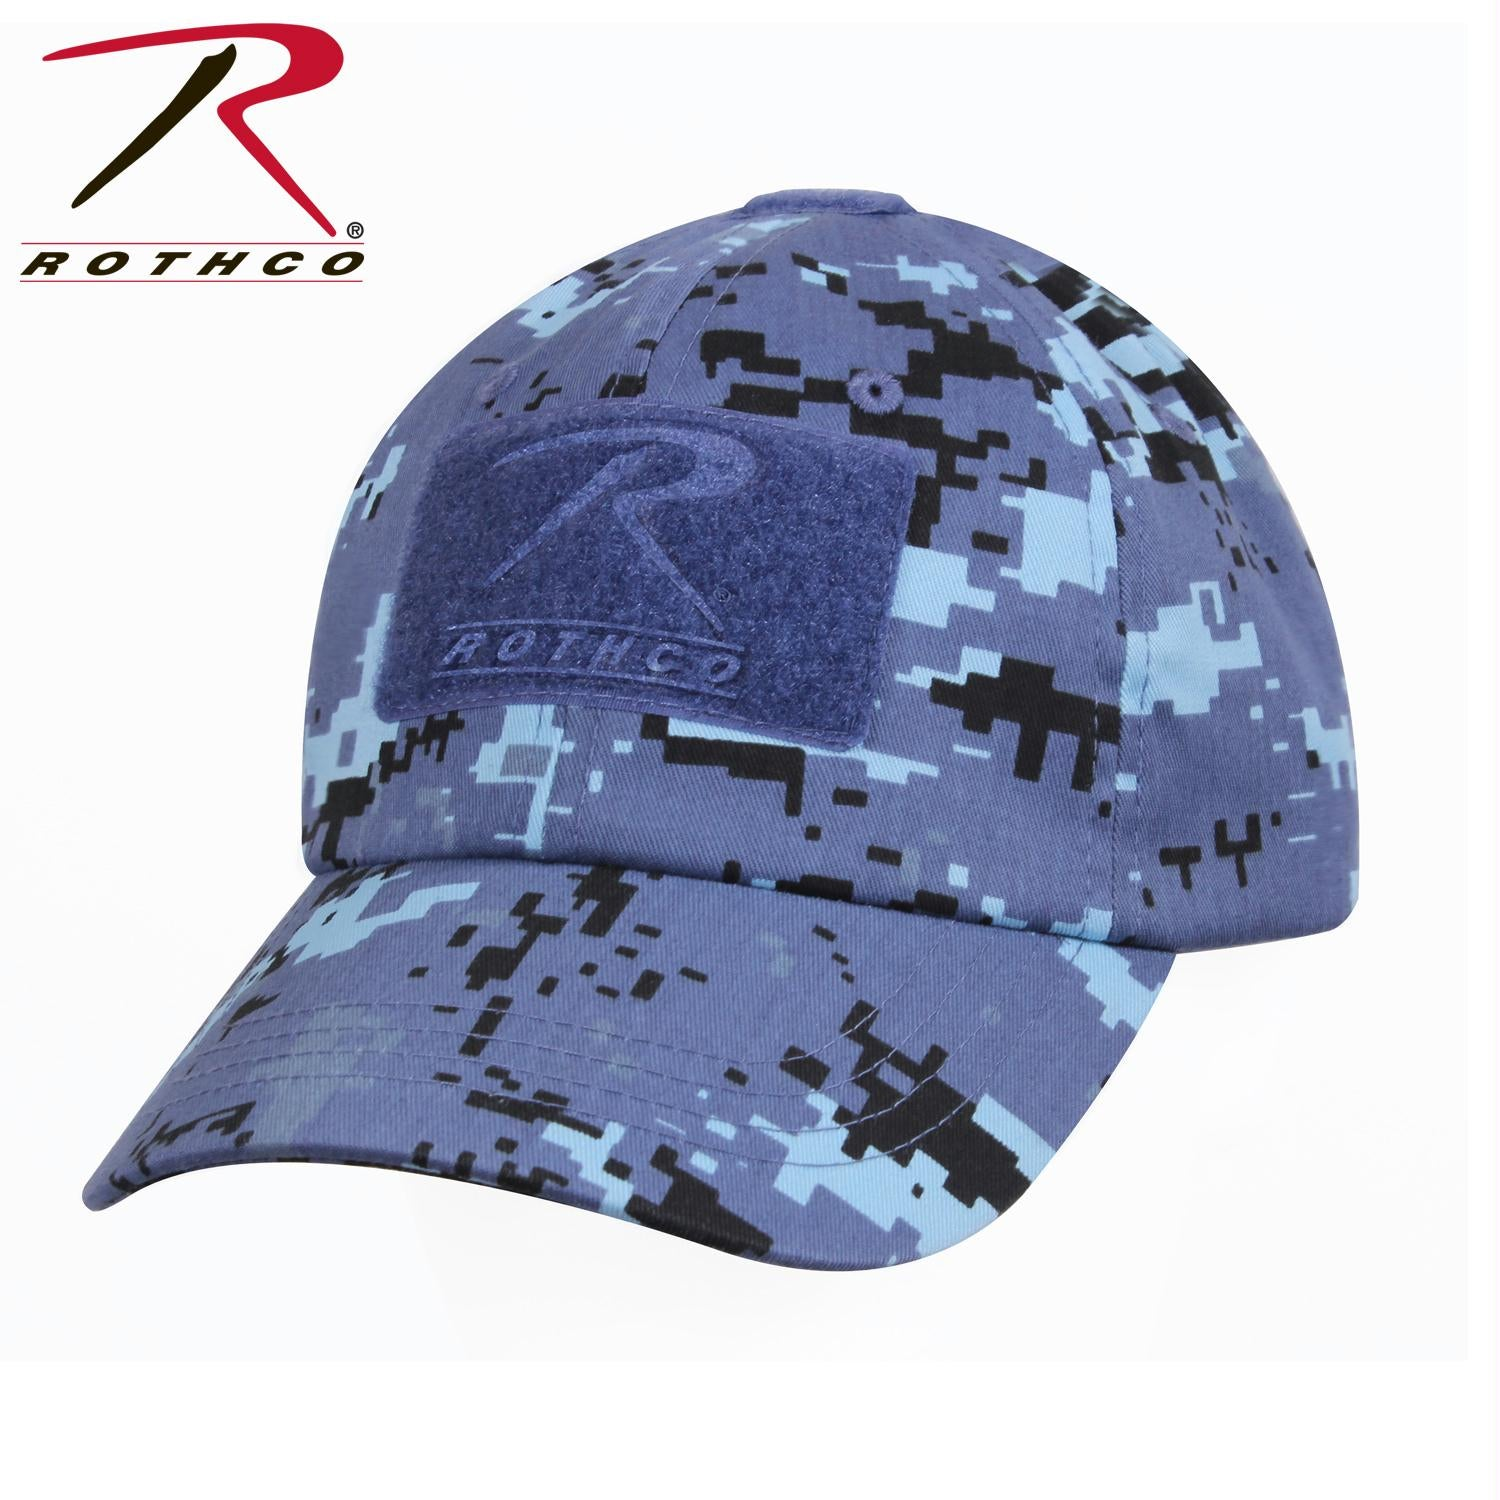 Rothco Tactical Operator Cap - Sky Blue Digital Camo